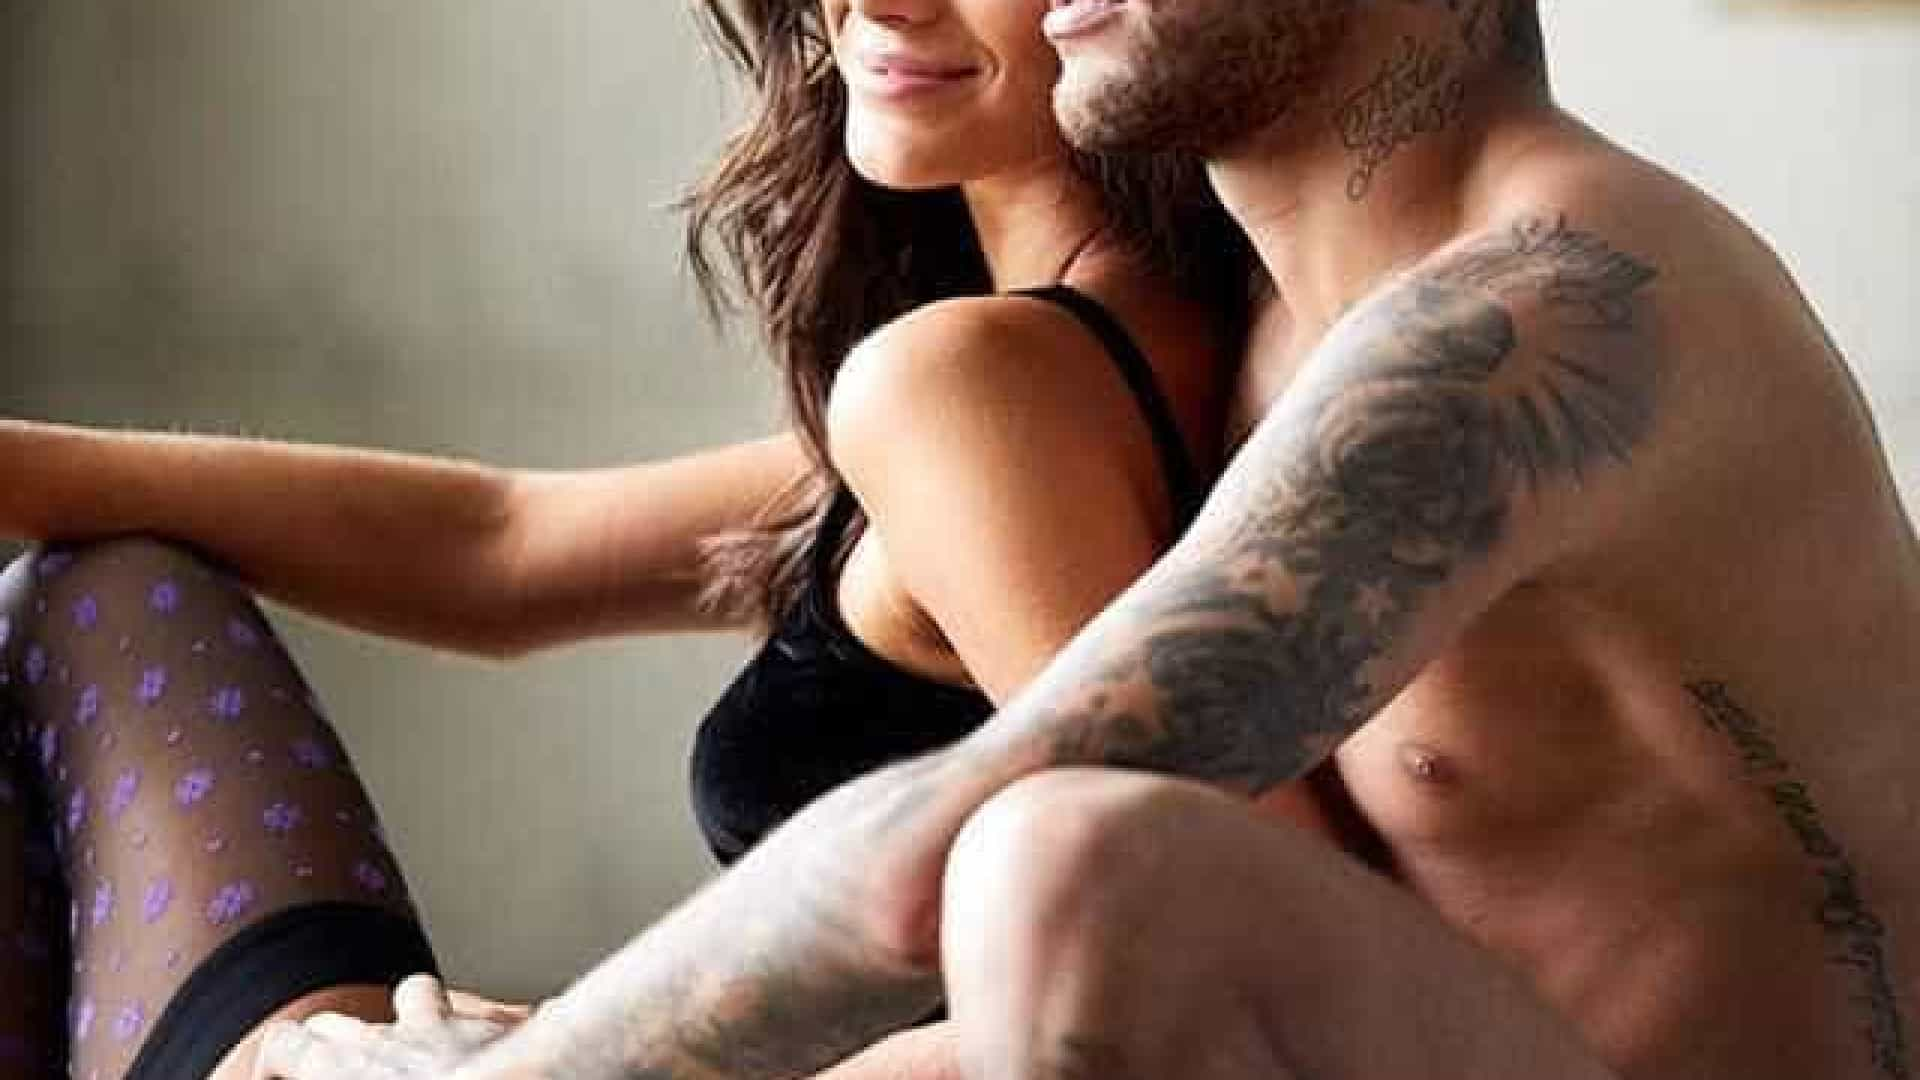 Bruna Marquezine e Neymar: entenda as idas e vindas do casal